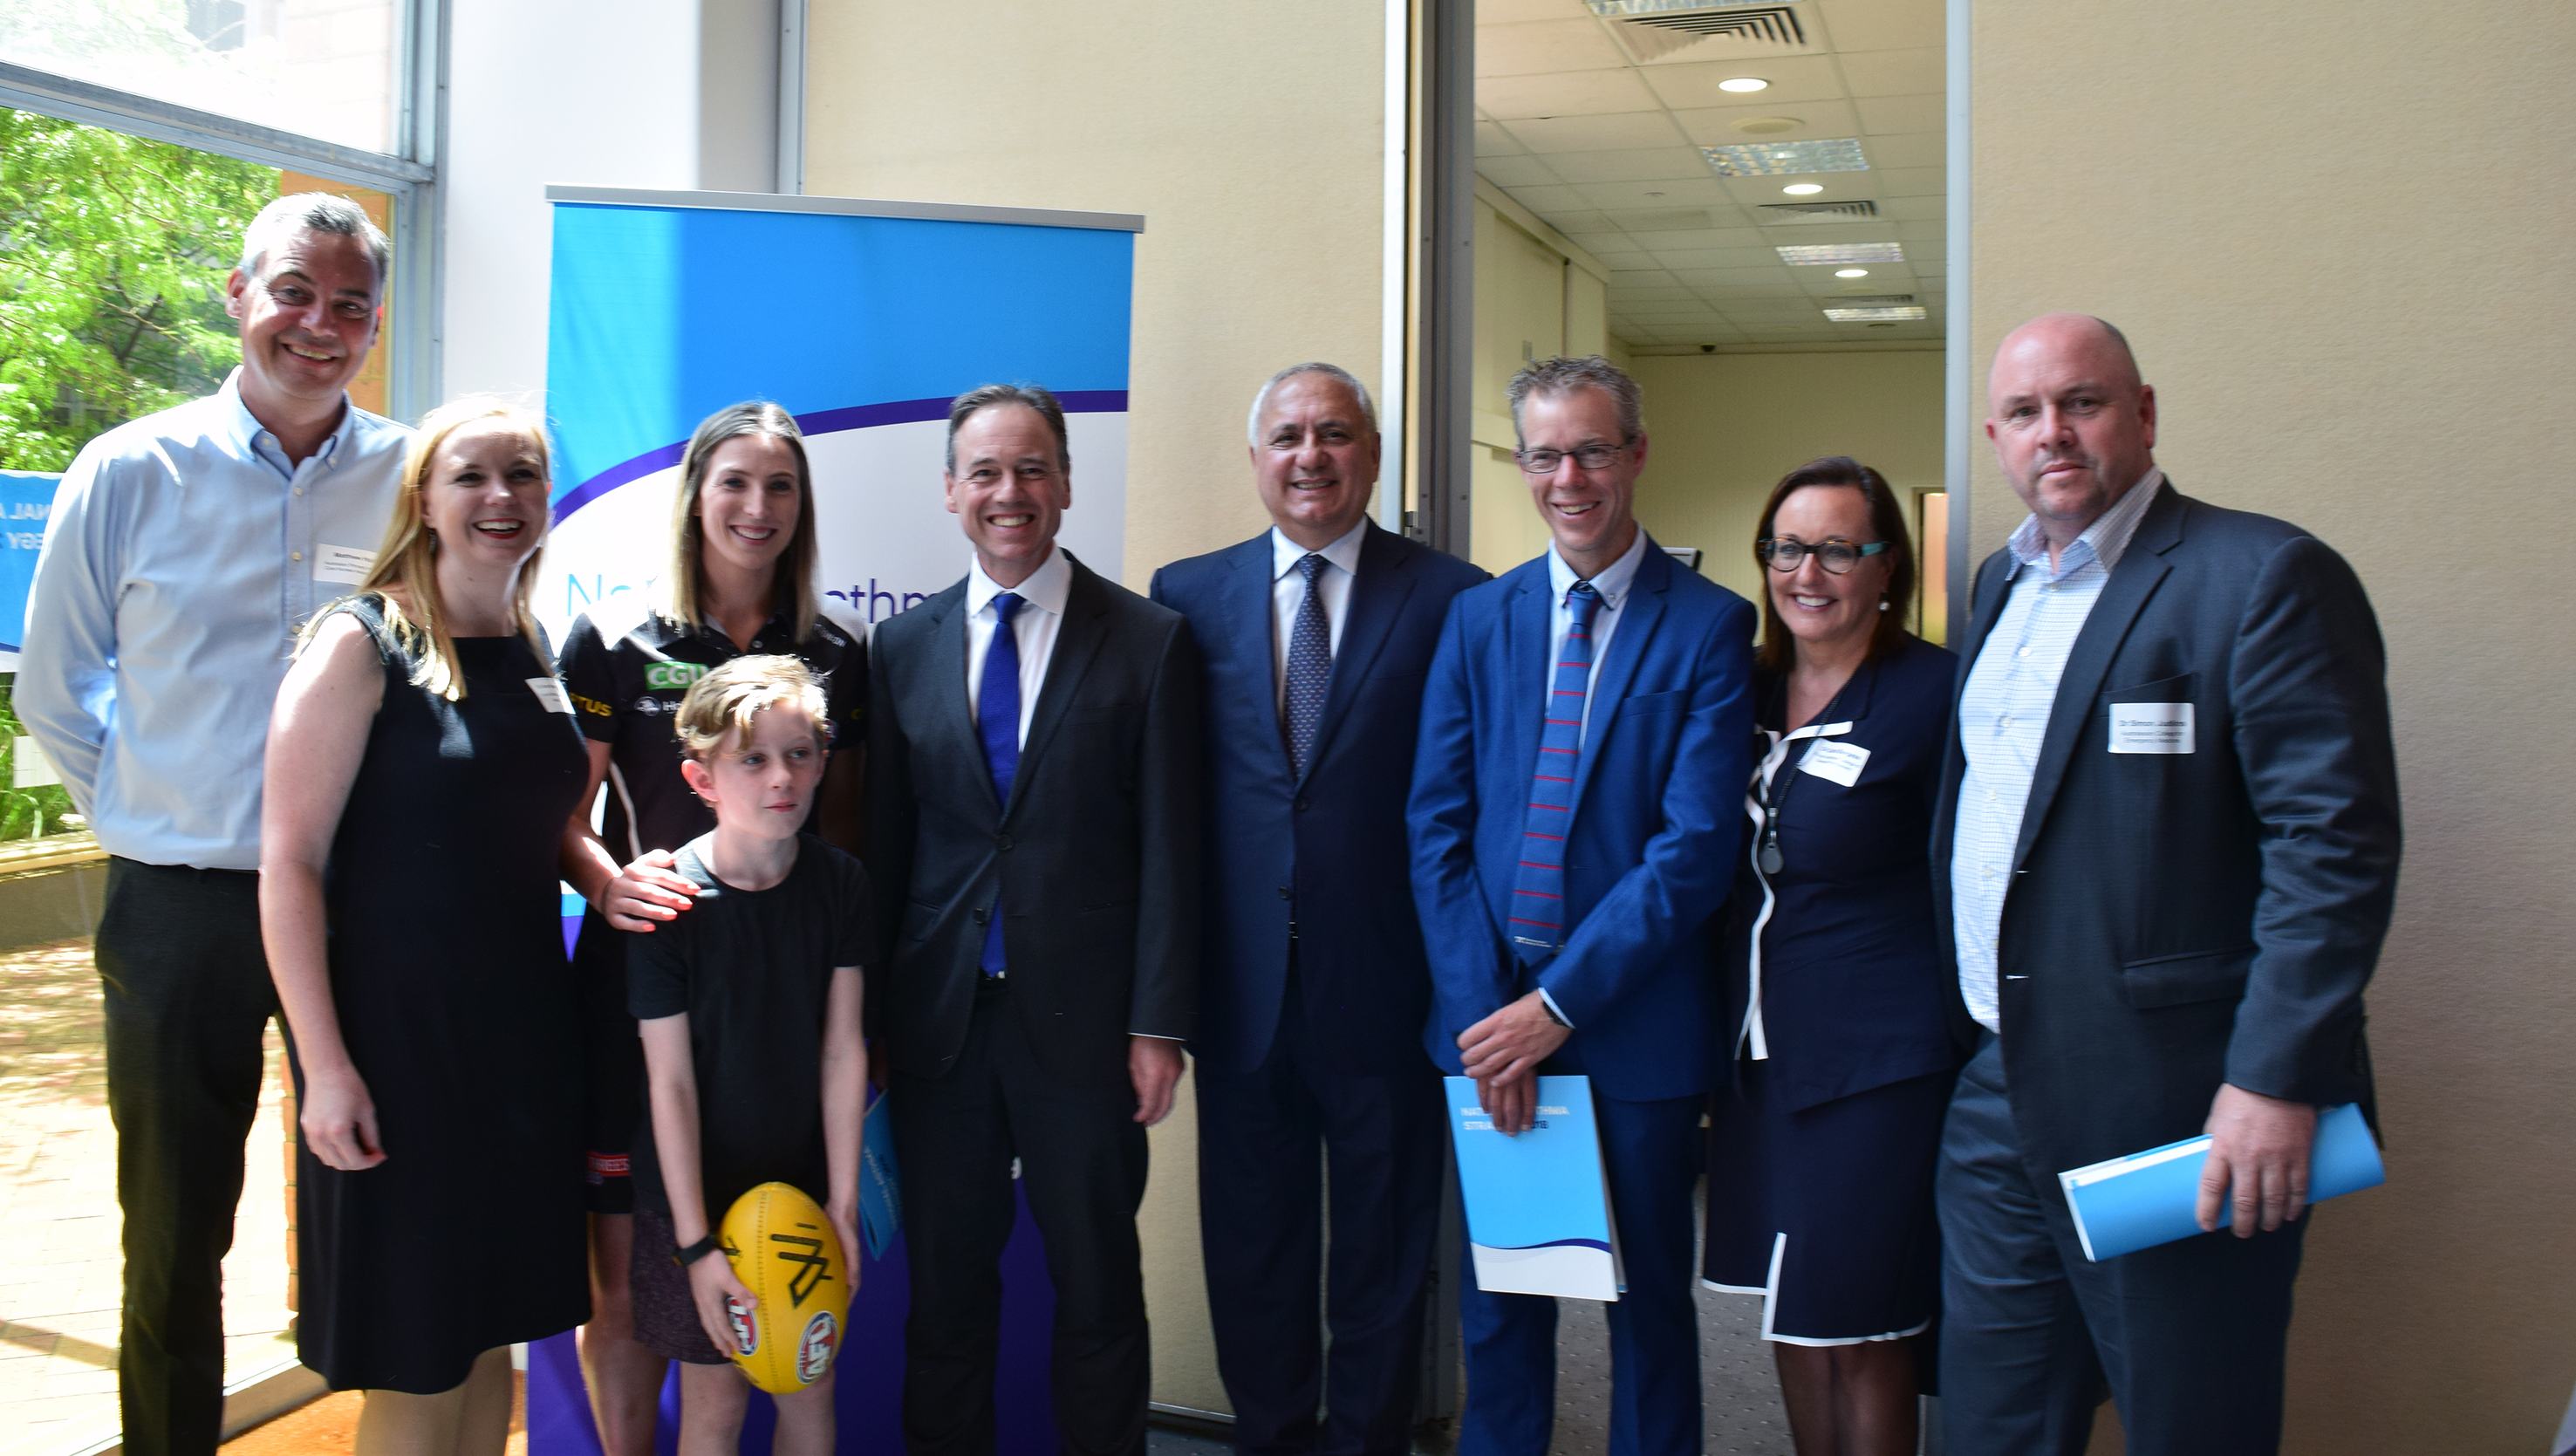 National Asthma Strategy launch group photo